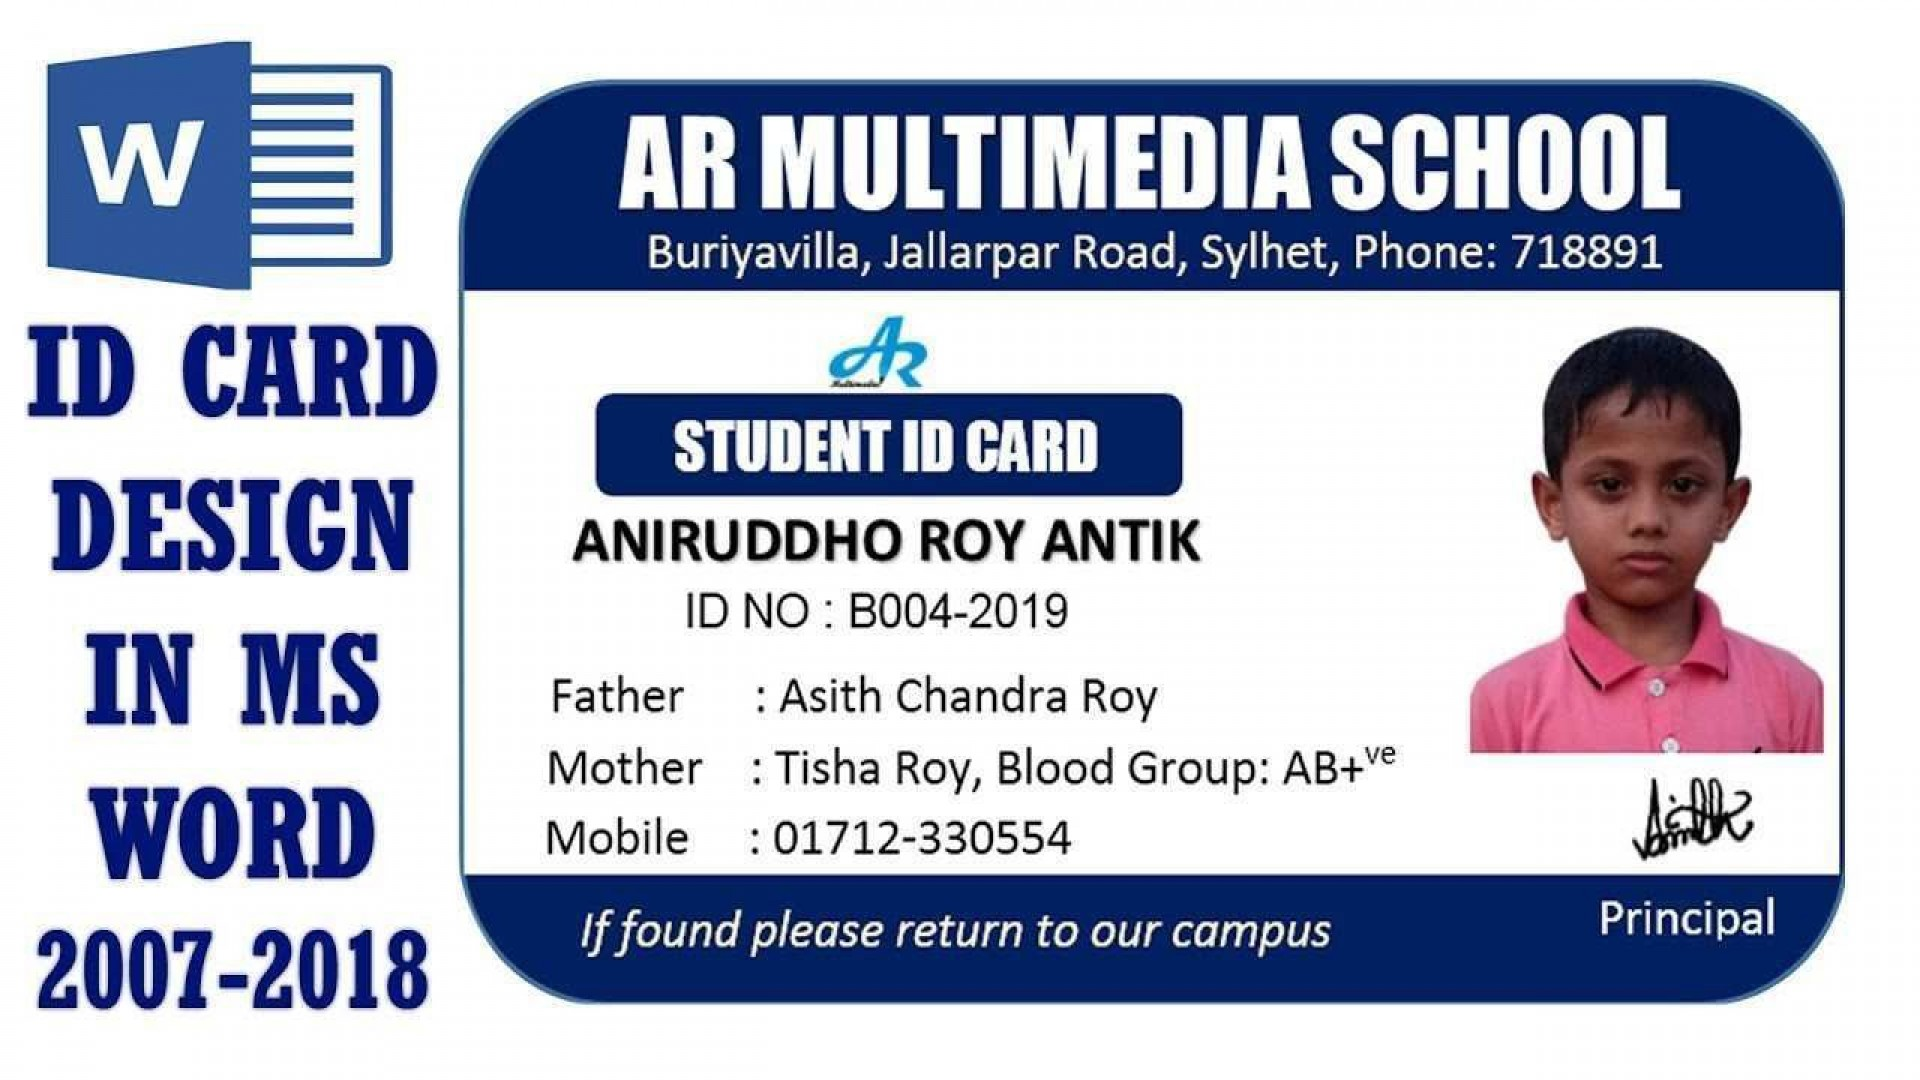 001 Fantastic Student Id Card Template Design  Psd Free School Microsoft Word Download1920